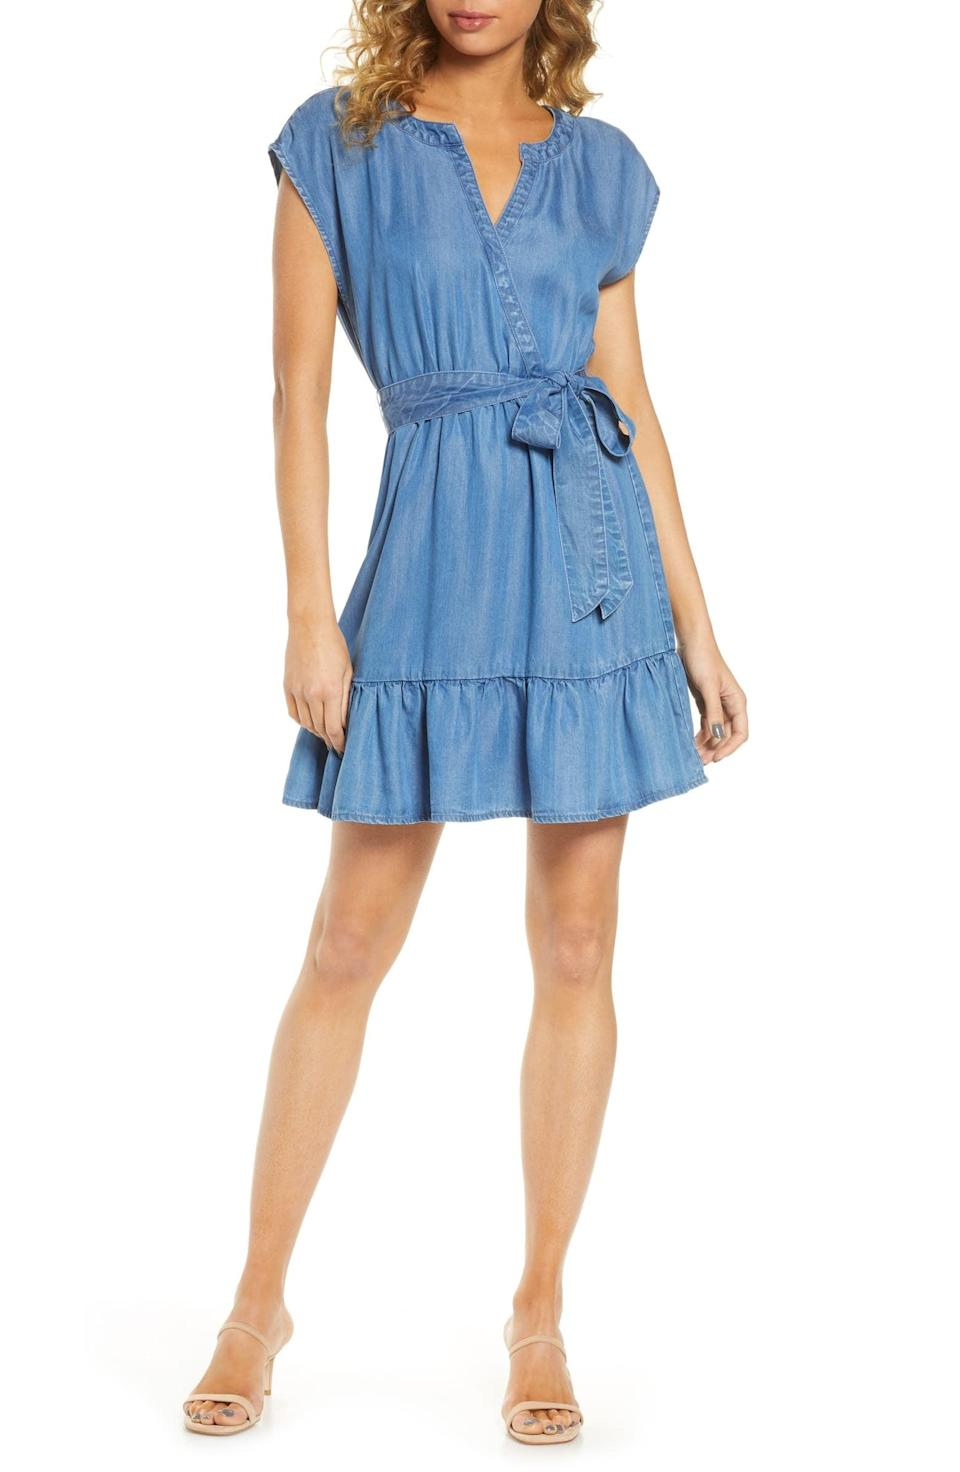 "<p>The tie waist on this <a href=""https://www.popsugar.com/buy/BB-Dakota-Ruffle-Hem-Chambray-Wrap-Minidress-582014?p_name=BB%20Dakota%20Ruffle%20Hem%20Chambray%20Wrap%20Minidress&retailer=shop.nordstrom.com&pid=582014&price=99&evar1=fab%3Aus&evar9=35329485&evar98=https%3A%2F%2Fwww.popsugar.com%2Ffashion%2Fphoto-gallery%2F35329485%2Fimage%2F47550220%2FBB-Dakota-Ruffle-Hem-Chambray-Wrap-Minidress&list1=shopping%2Cdenim%2Csummer%20fashion%2Cfashion%20shopping&prop13=mobile&pdata=1"" class=""link rapid-noclick-resp"" rel=""nofollow noopener"" target=""_blank"" data-ylk=""slk:BB Dakota Ruffle Hem Chambray Wrap Minidress"">BB Dakota Ruffle Hem Chambray Wrap Minidress</a> ($99) is so flattering.</p>"